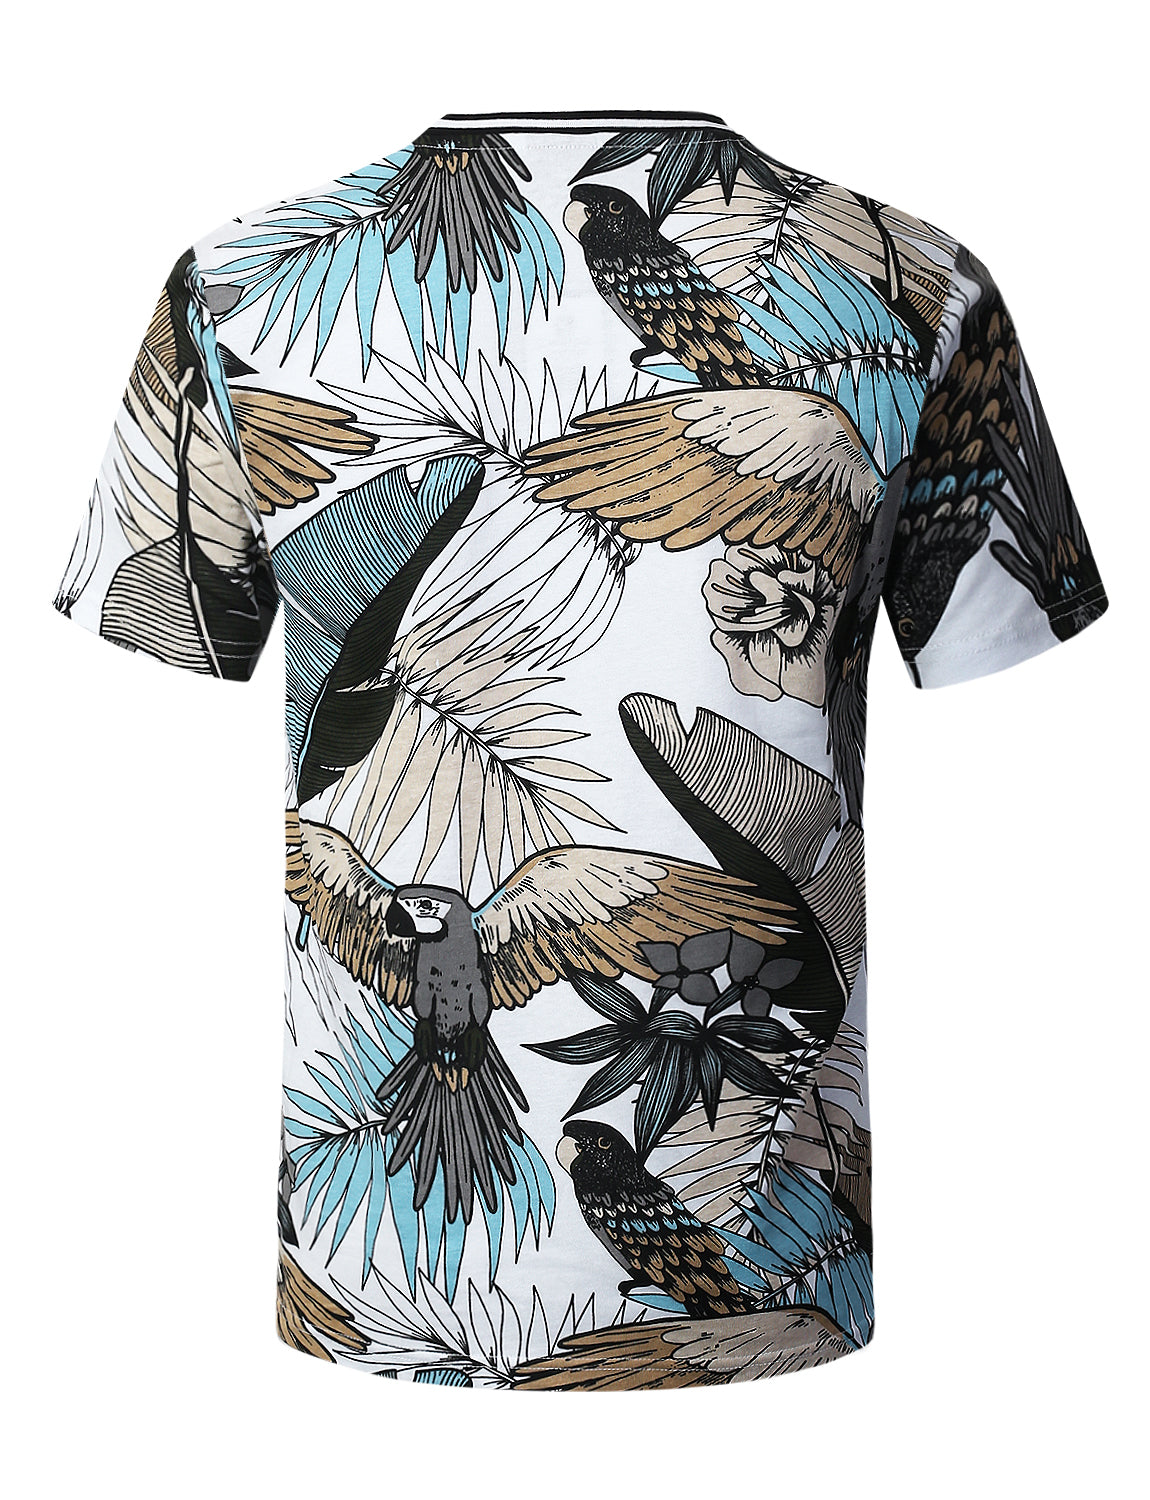 WHITE Tropical Parrot Print T-shirt - URBANCREWS